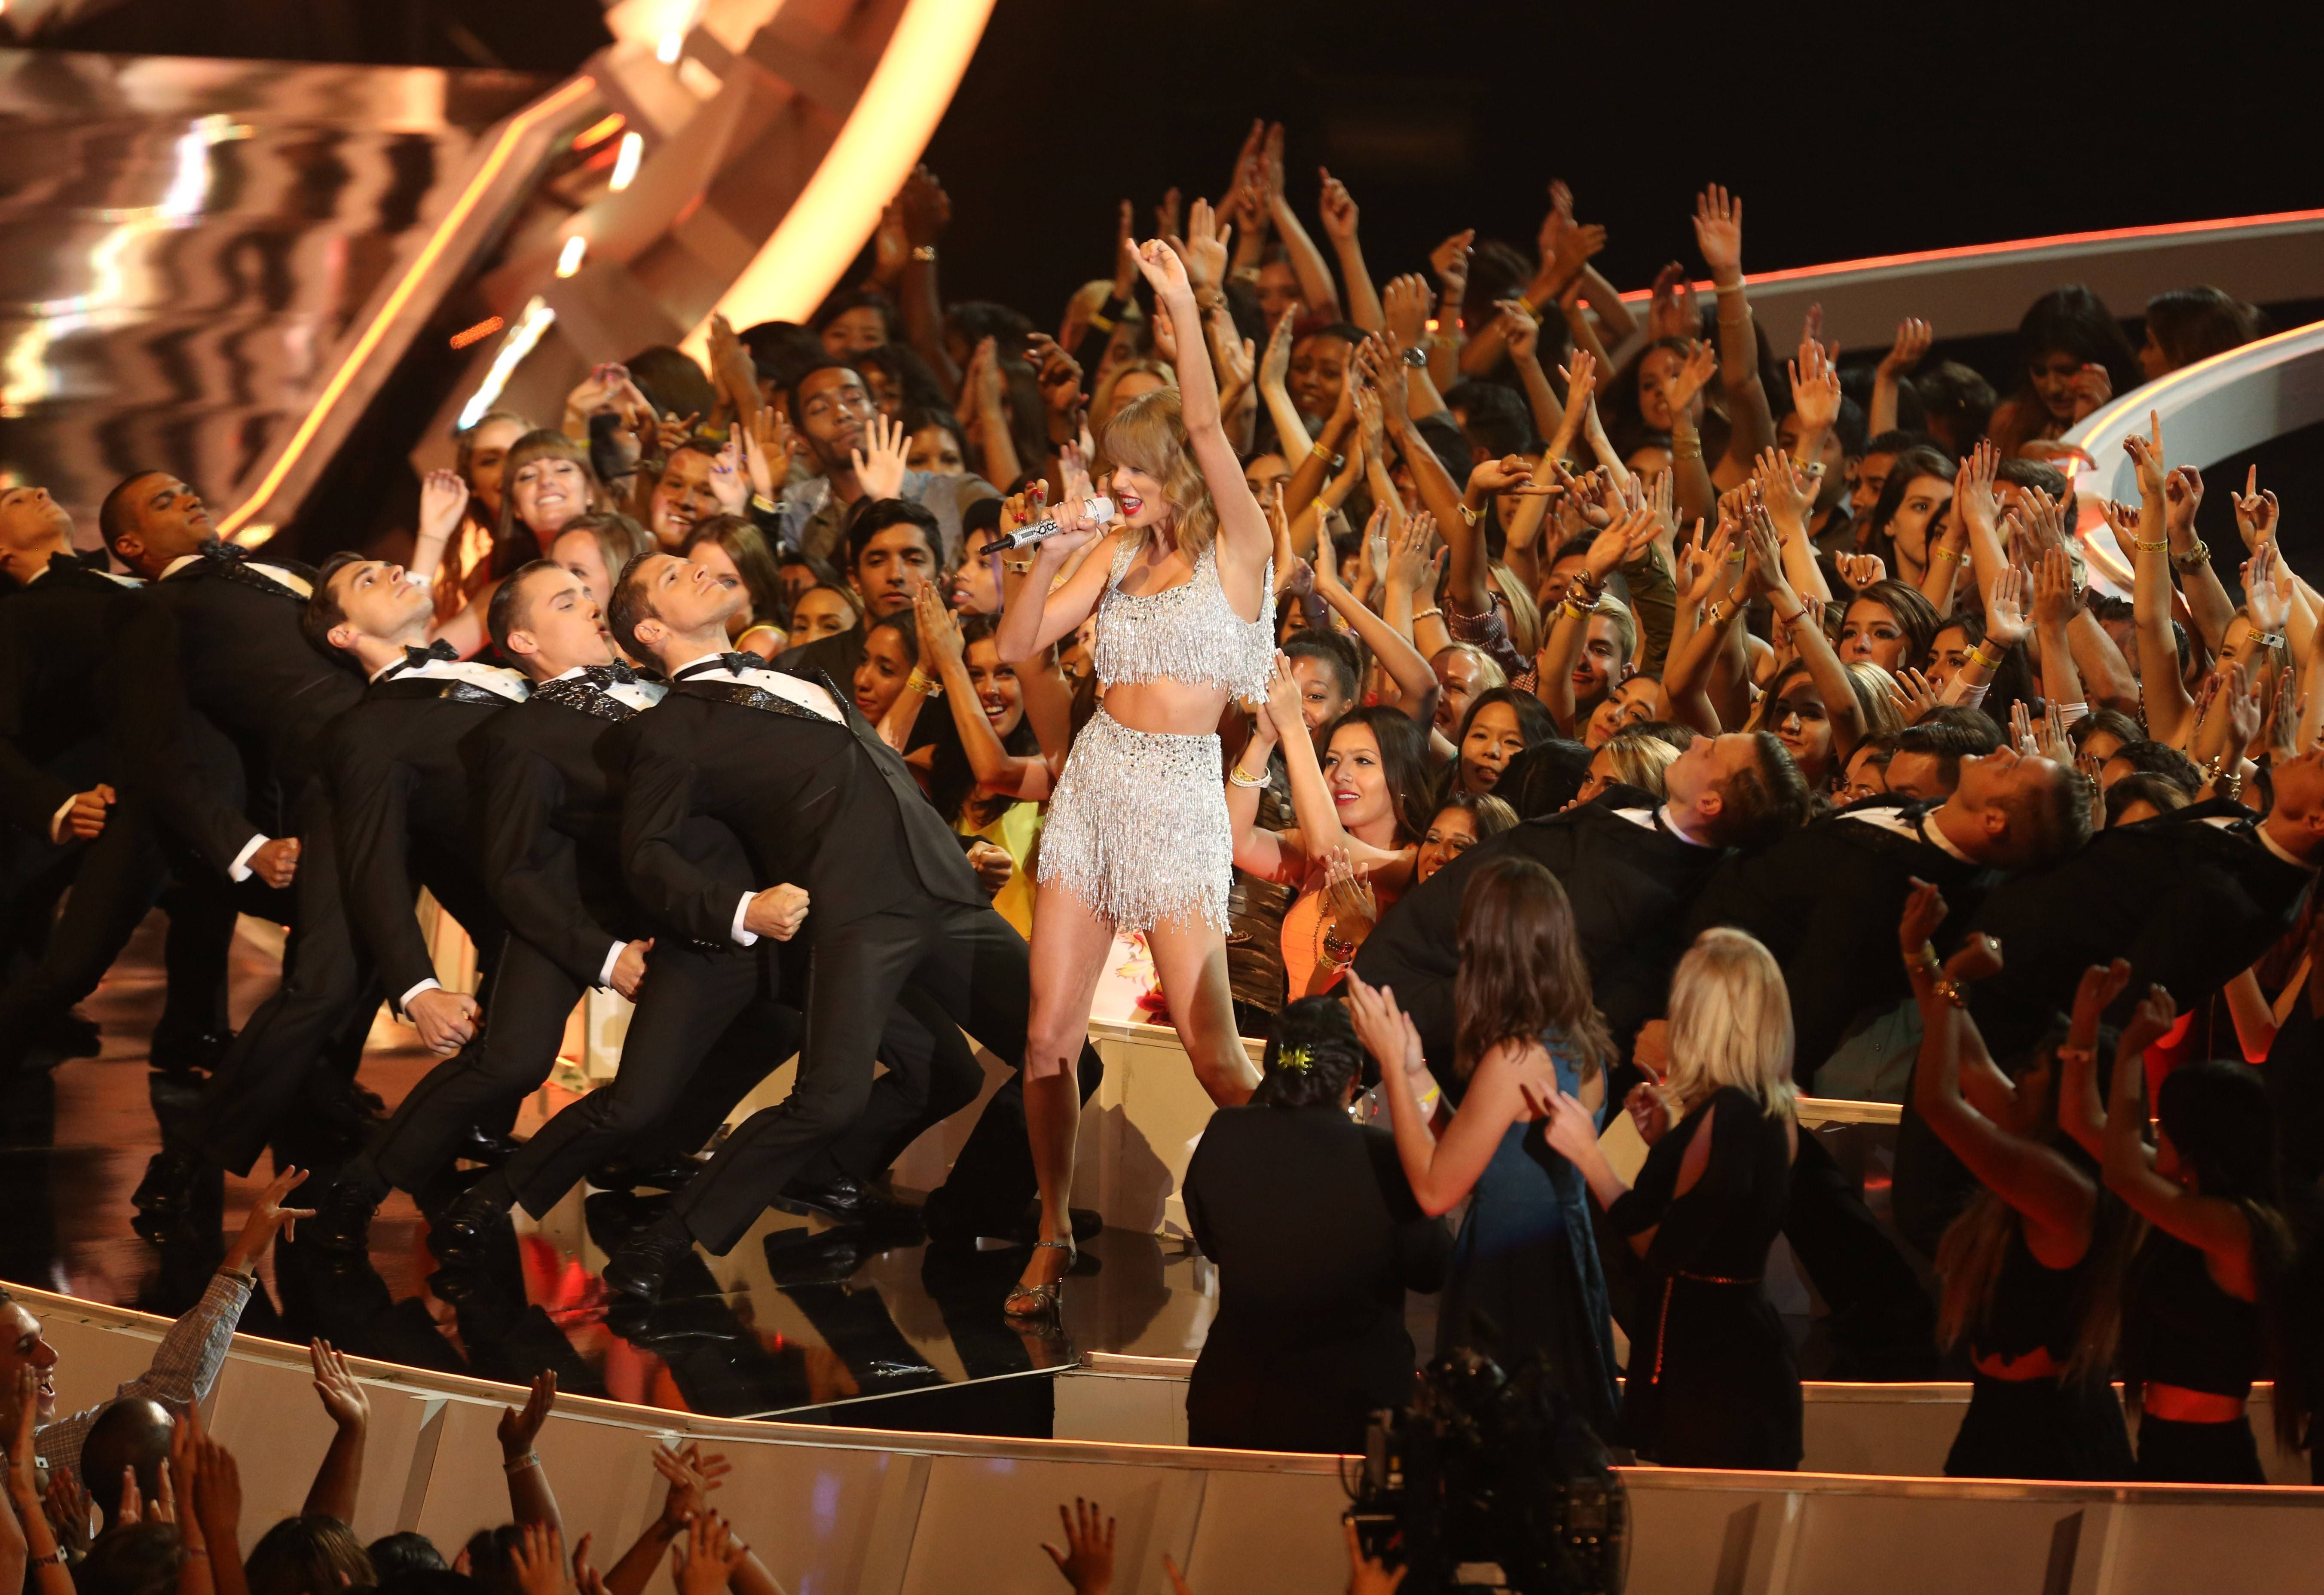 Taylor Swift performs at the MTV Video Music Awards.